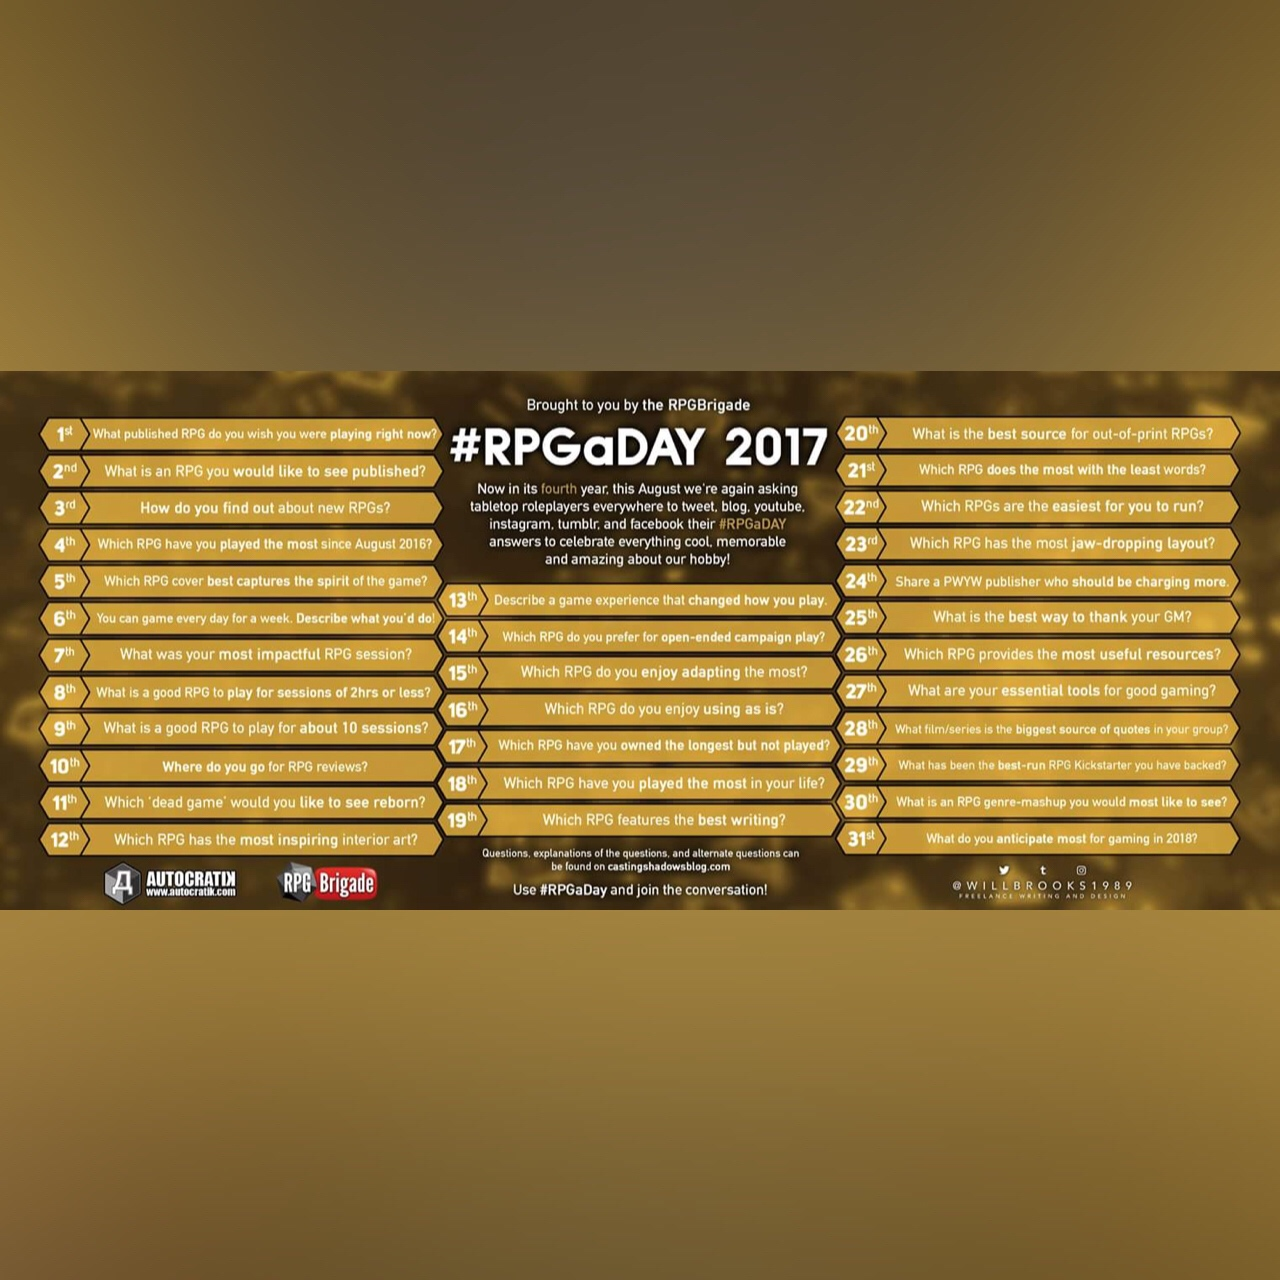 RPGaDAY 2017 August 5th Which RPG cover best captures the Spirit of the game?